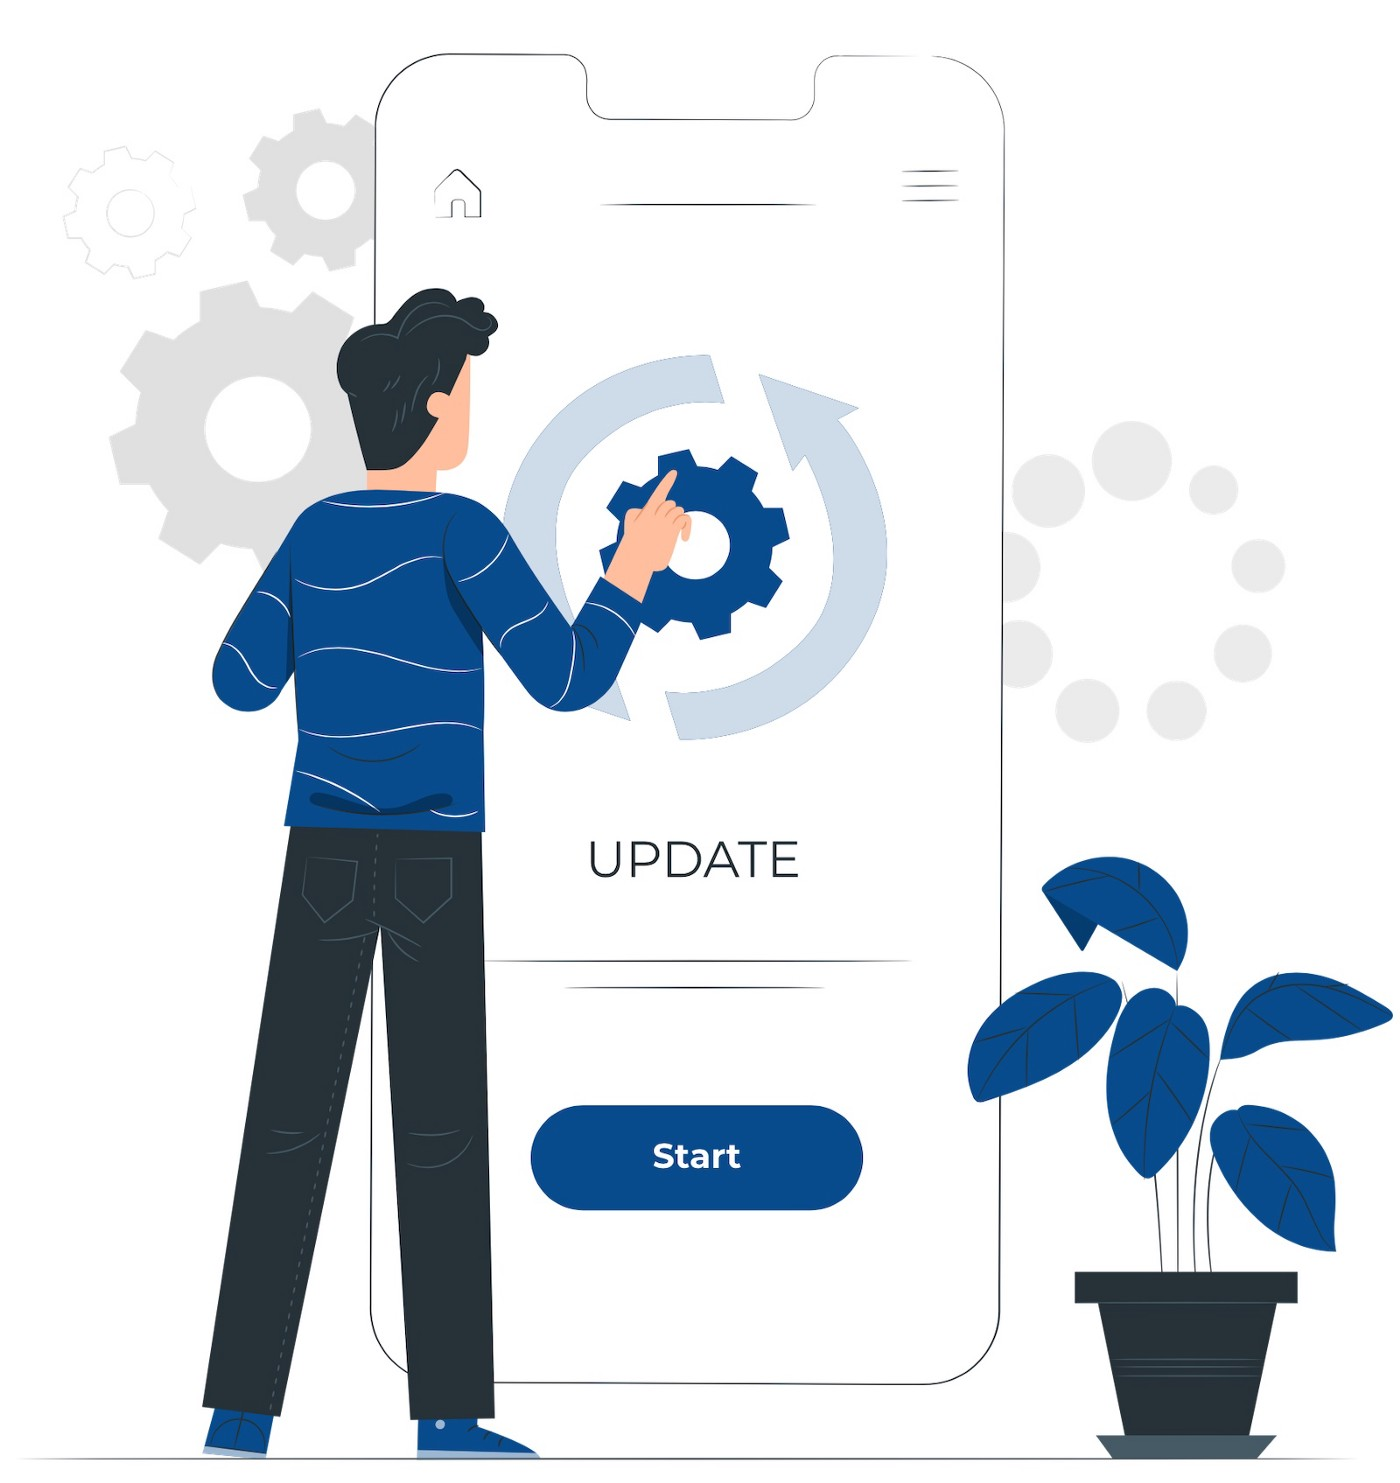 CI/CD pipeline implementation within software development allows developers to bring updates to customers much faster.